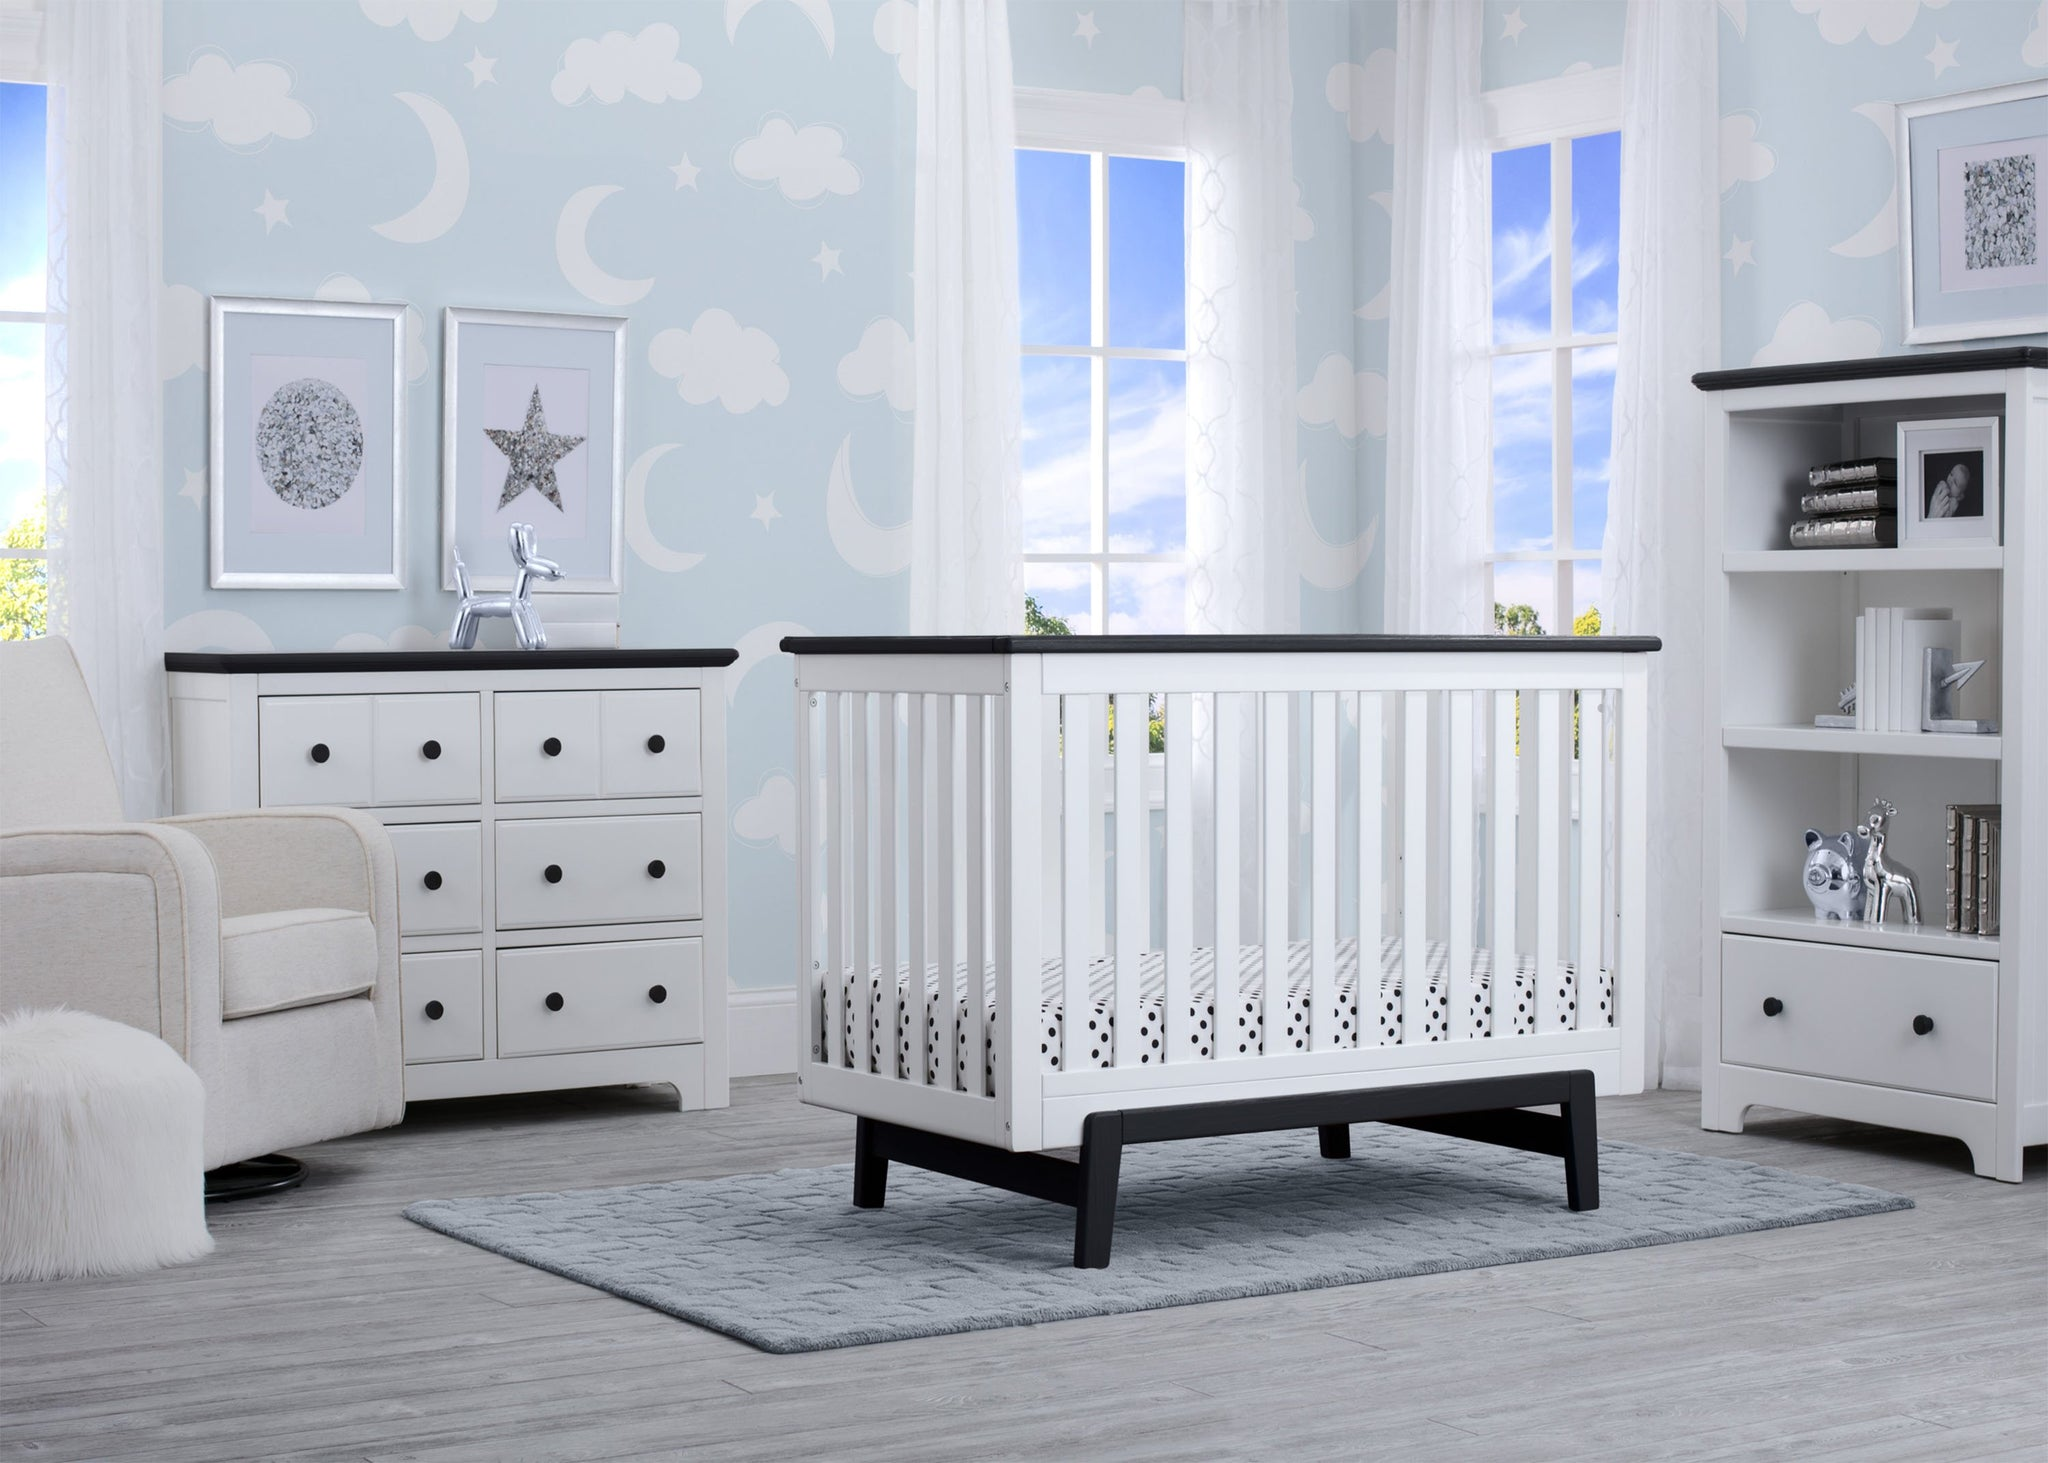 Delta Children Bianca with Rustic Ebony (135) Providence Classic 4-in-1 Convertible Crib (548650), Room, a1a